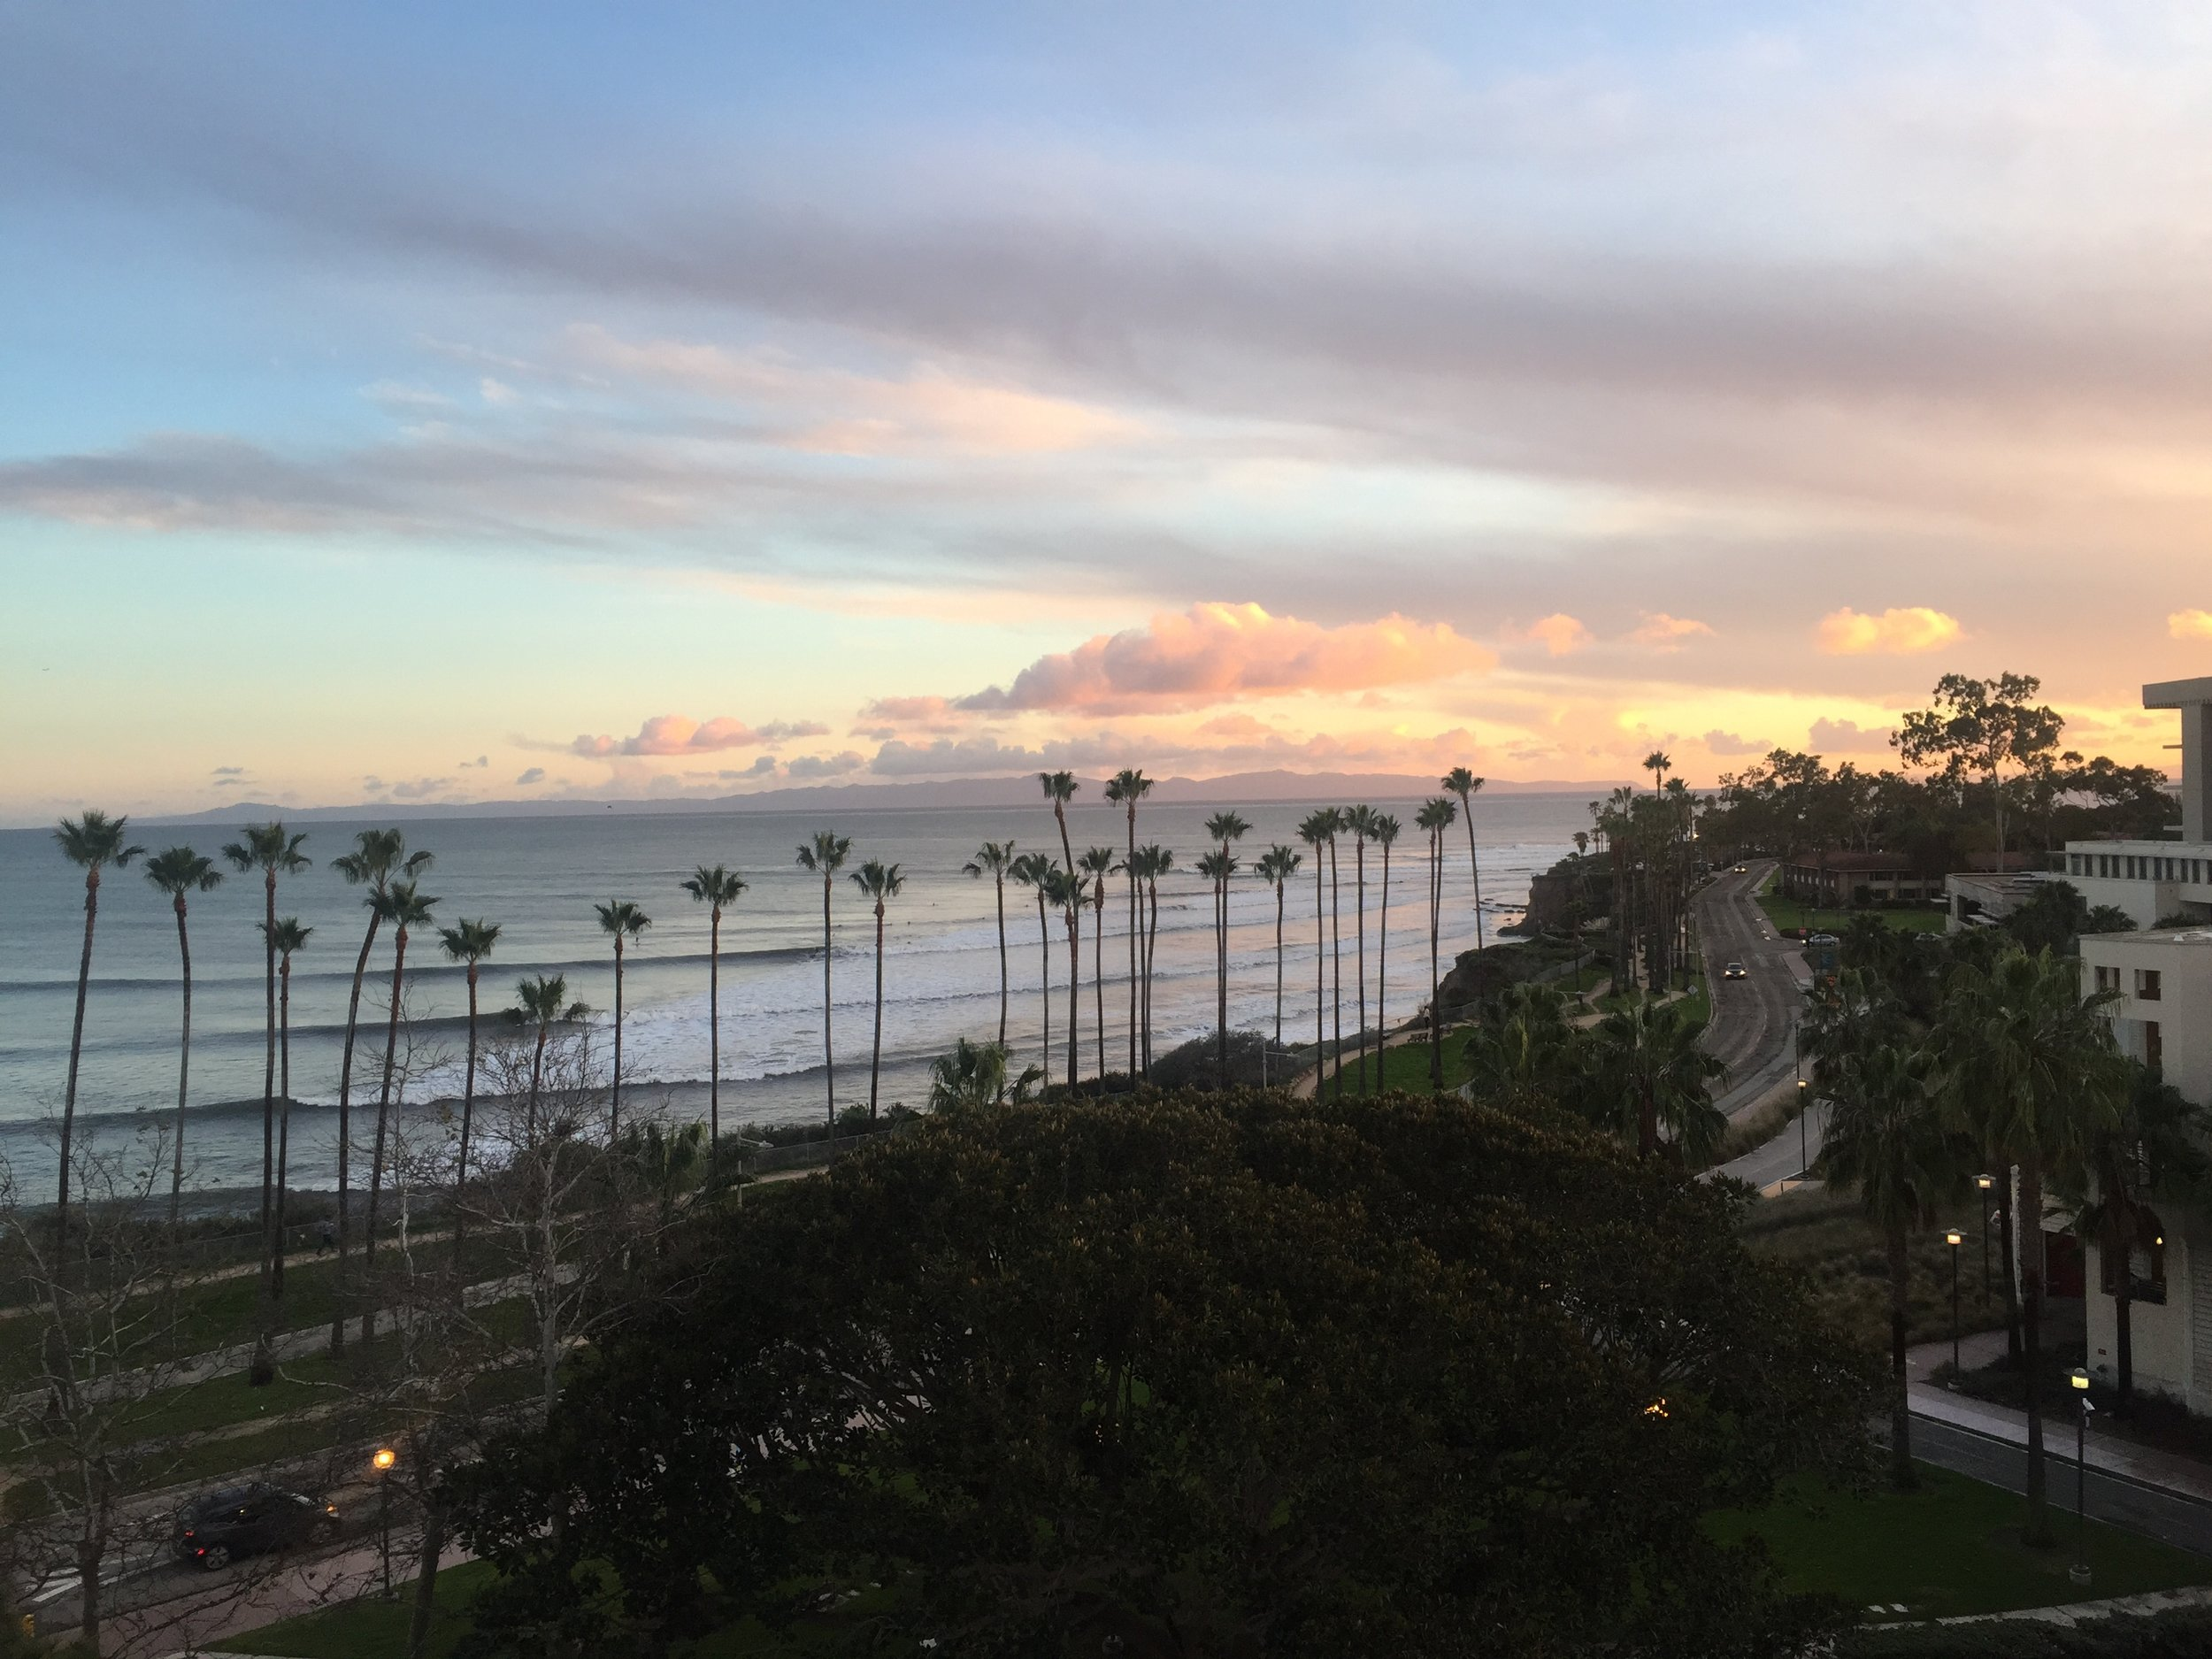 View from the window of the ArchLab at UC Santa Barbara